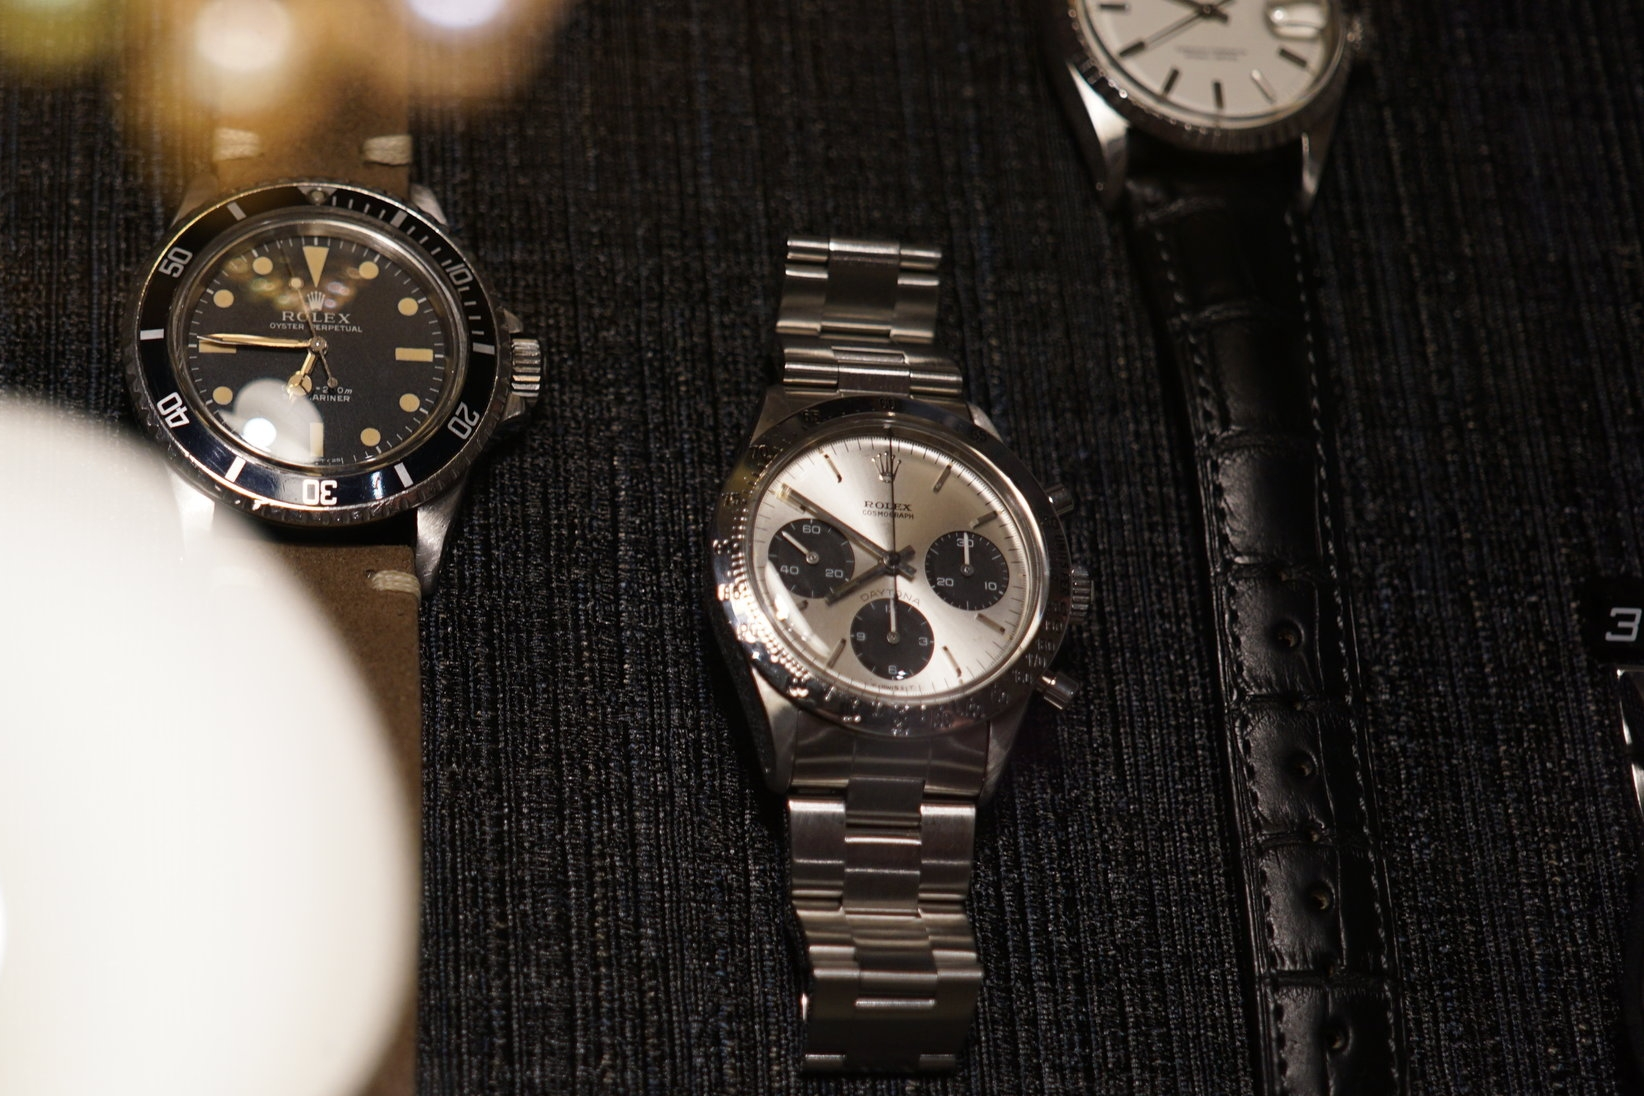 And what do we have here... A Rolex Daytona ref. 6262 from 1970.